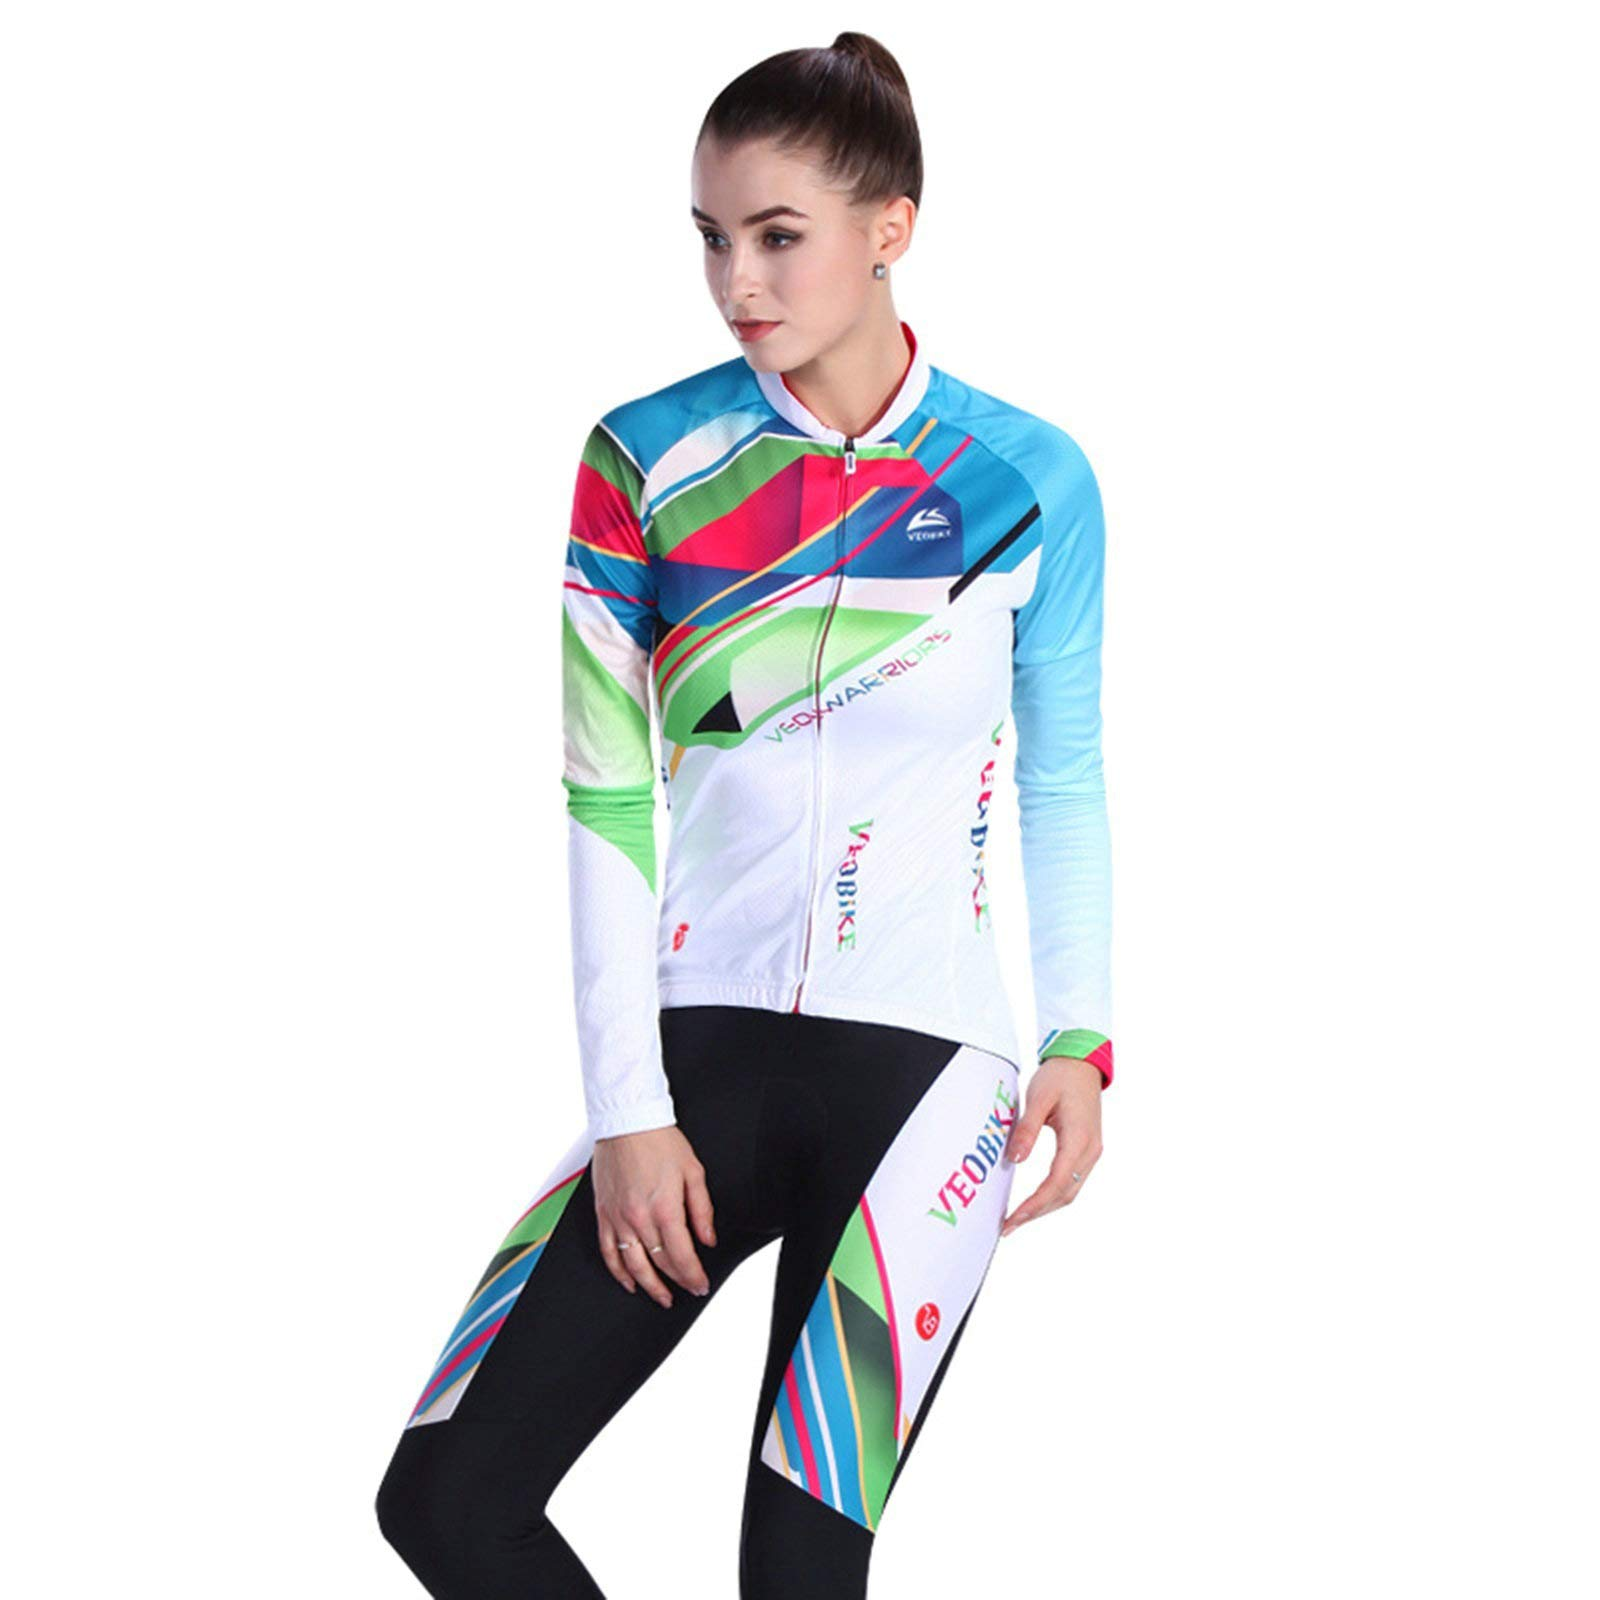 Aooaz Women Cycling Set Shirt and Tights Multicolor Design Size M Cycling Accessory